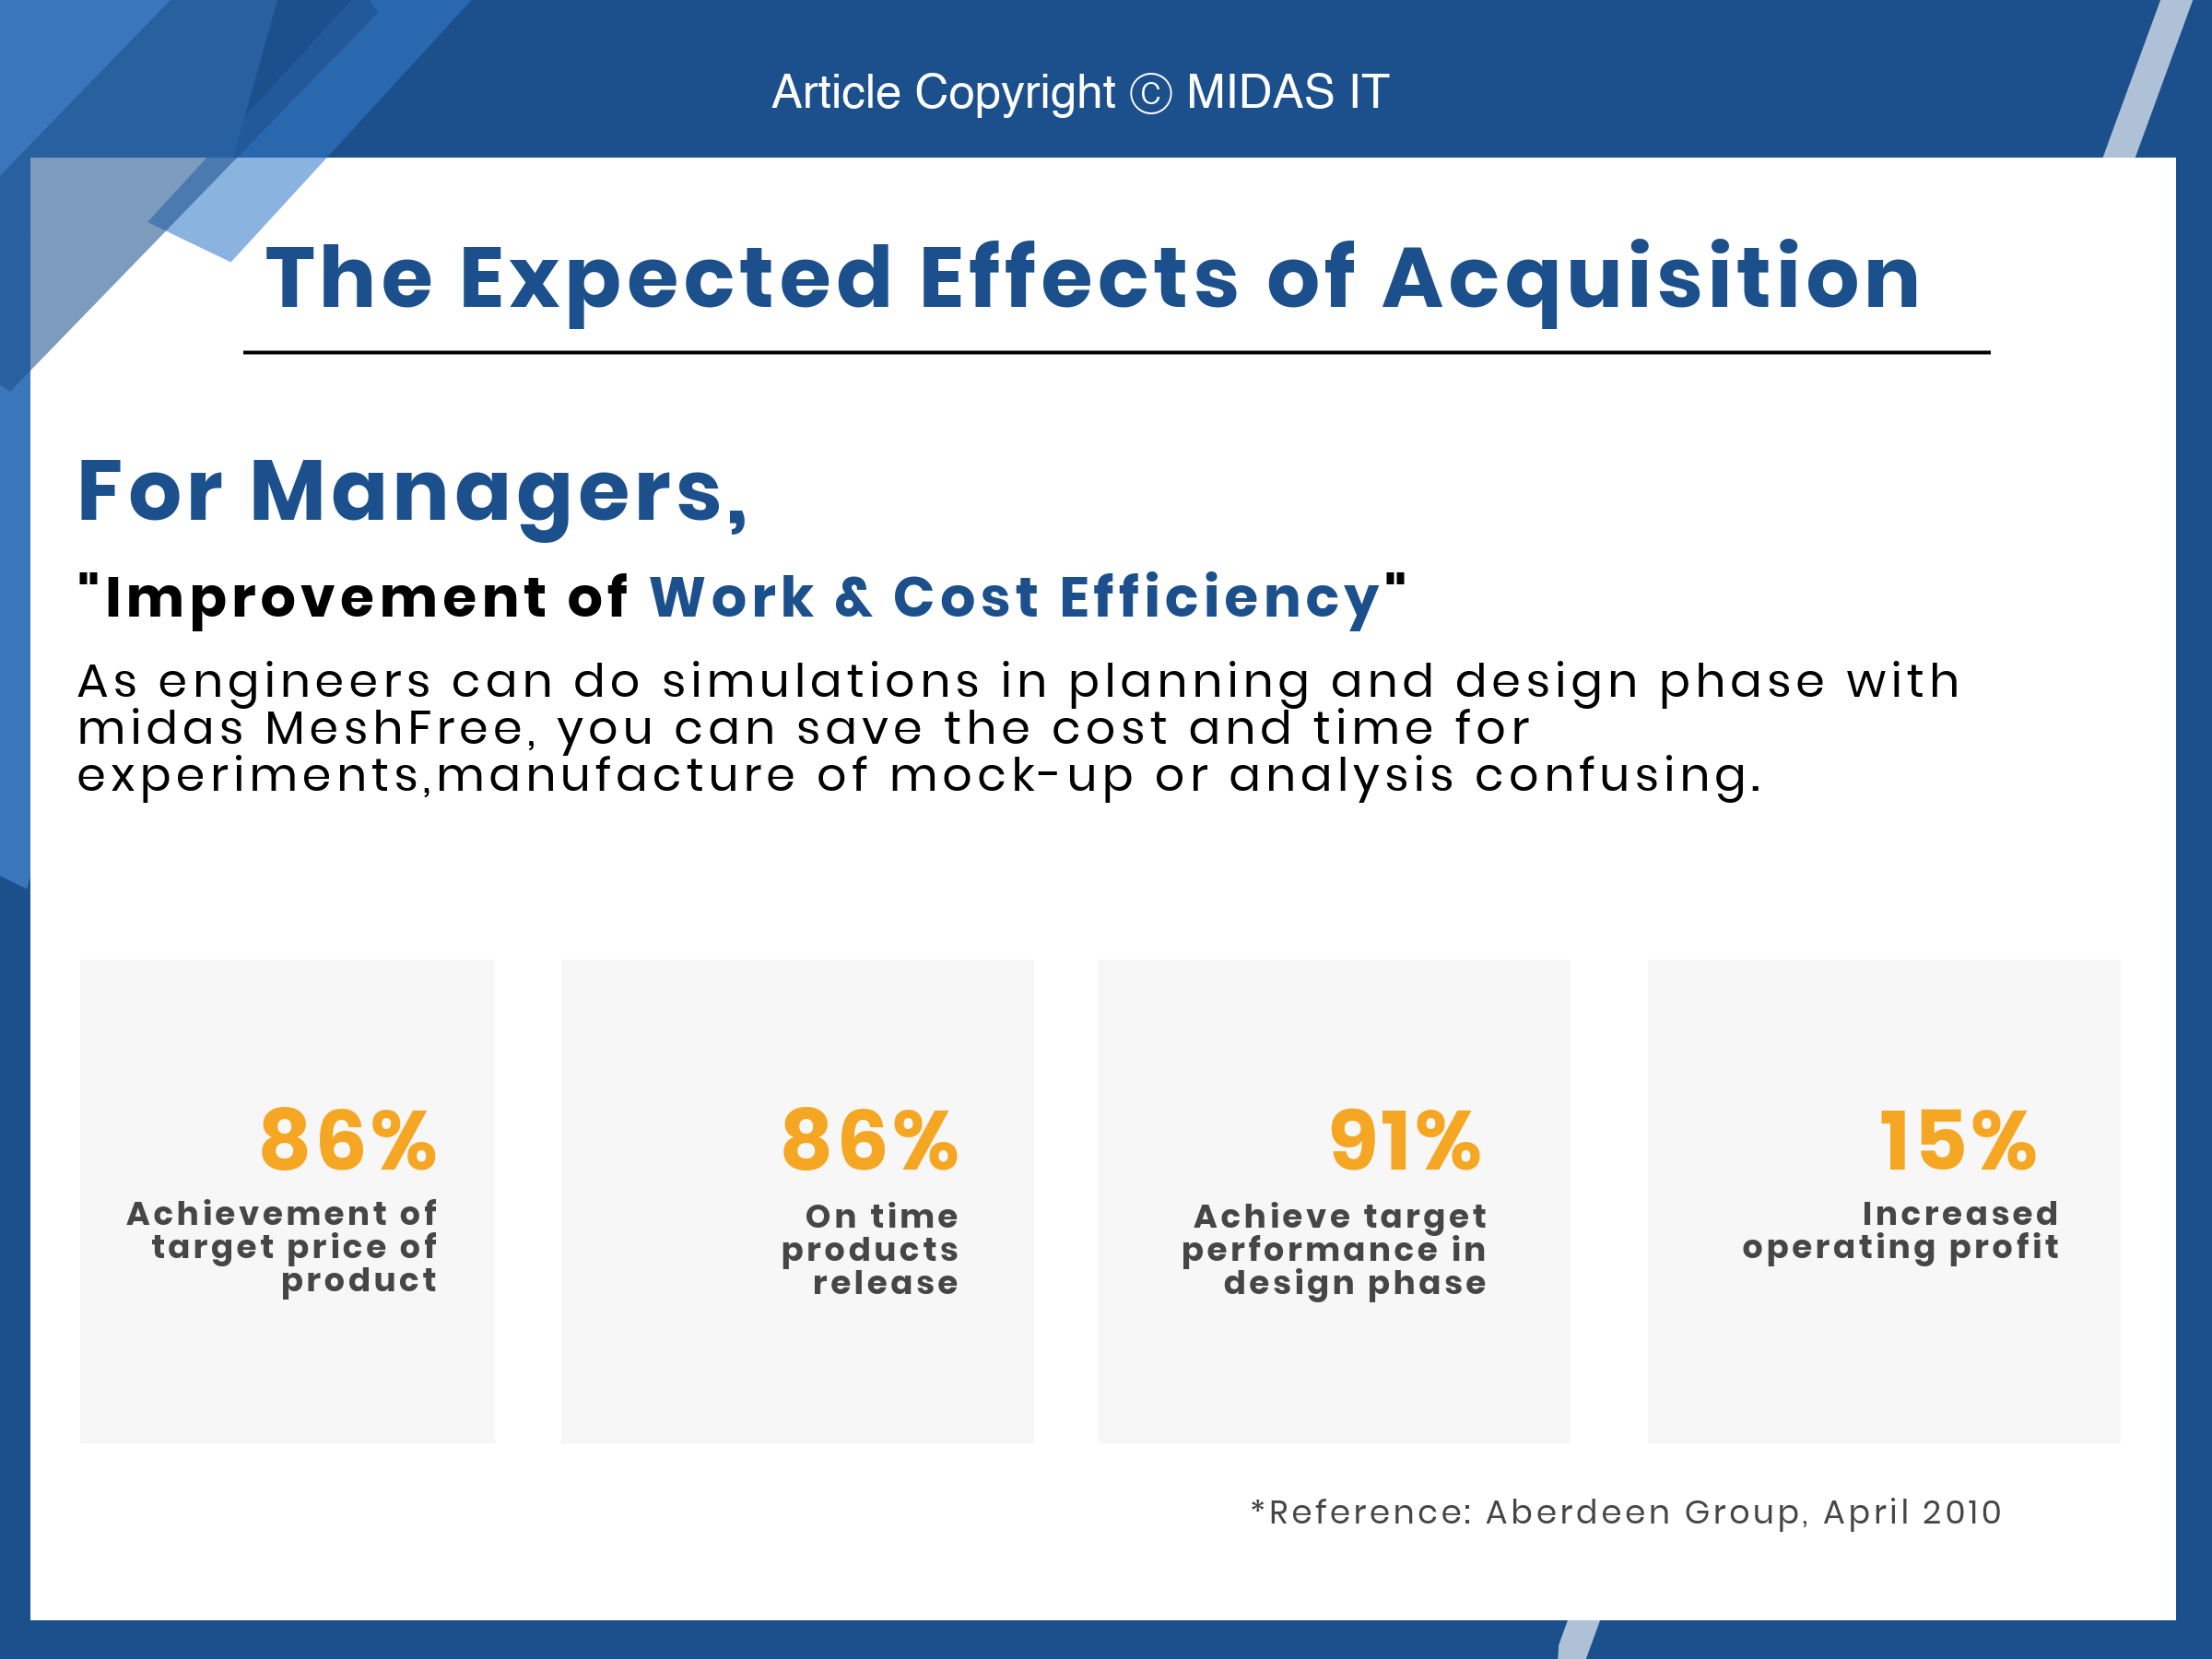 The expected effects of acquisition of MeshFree for managers. (4th Slide)